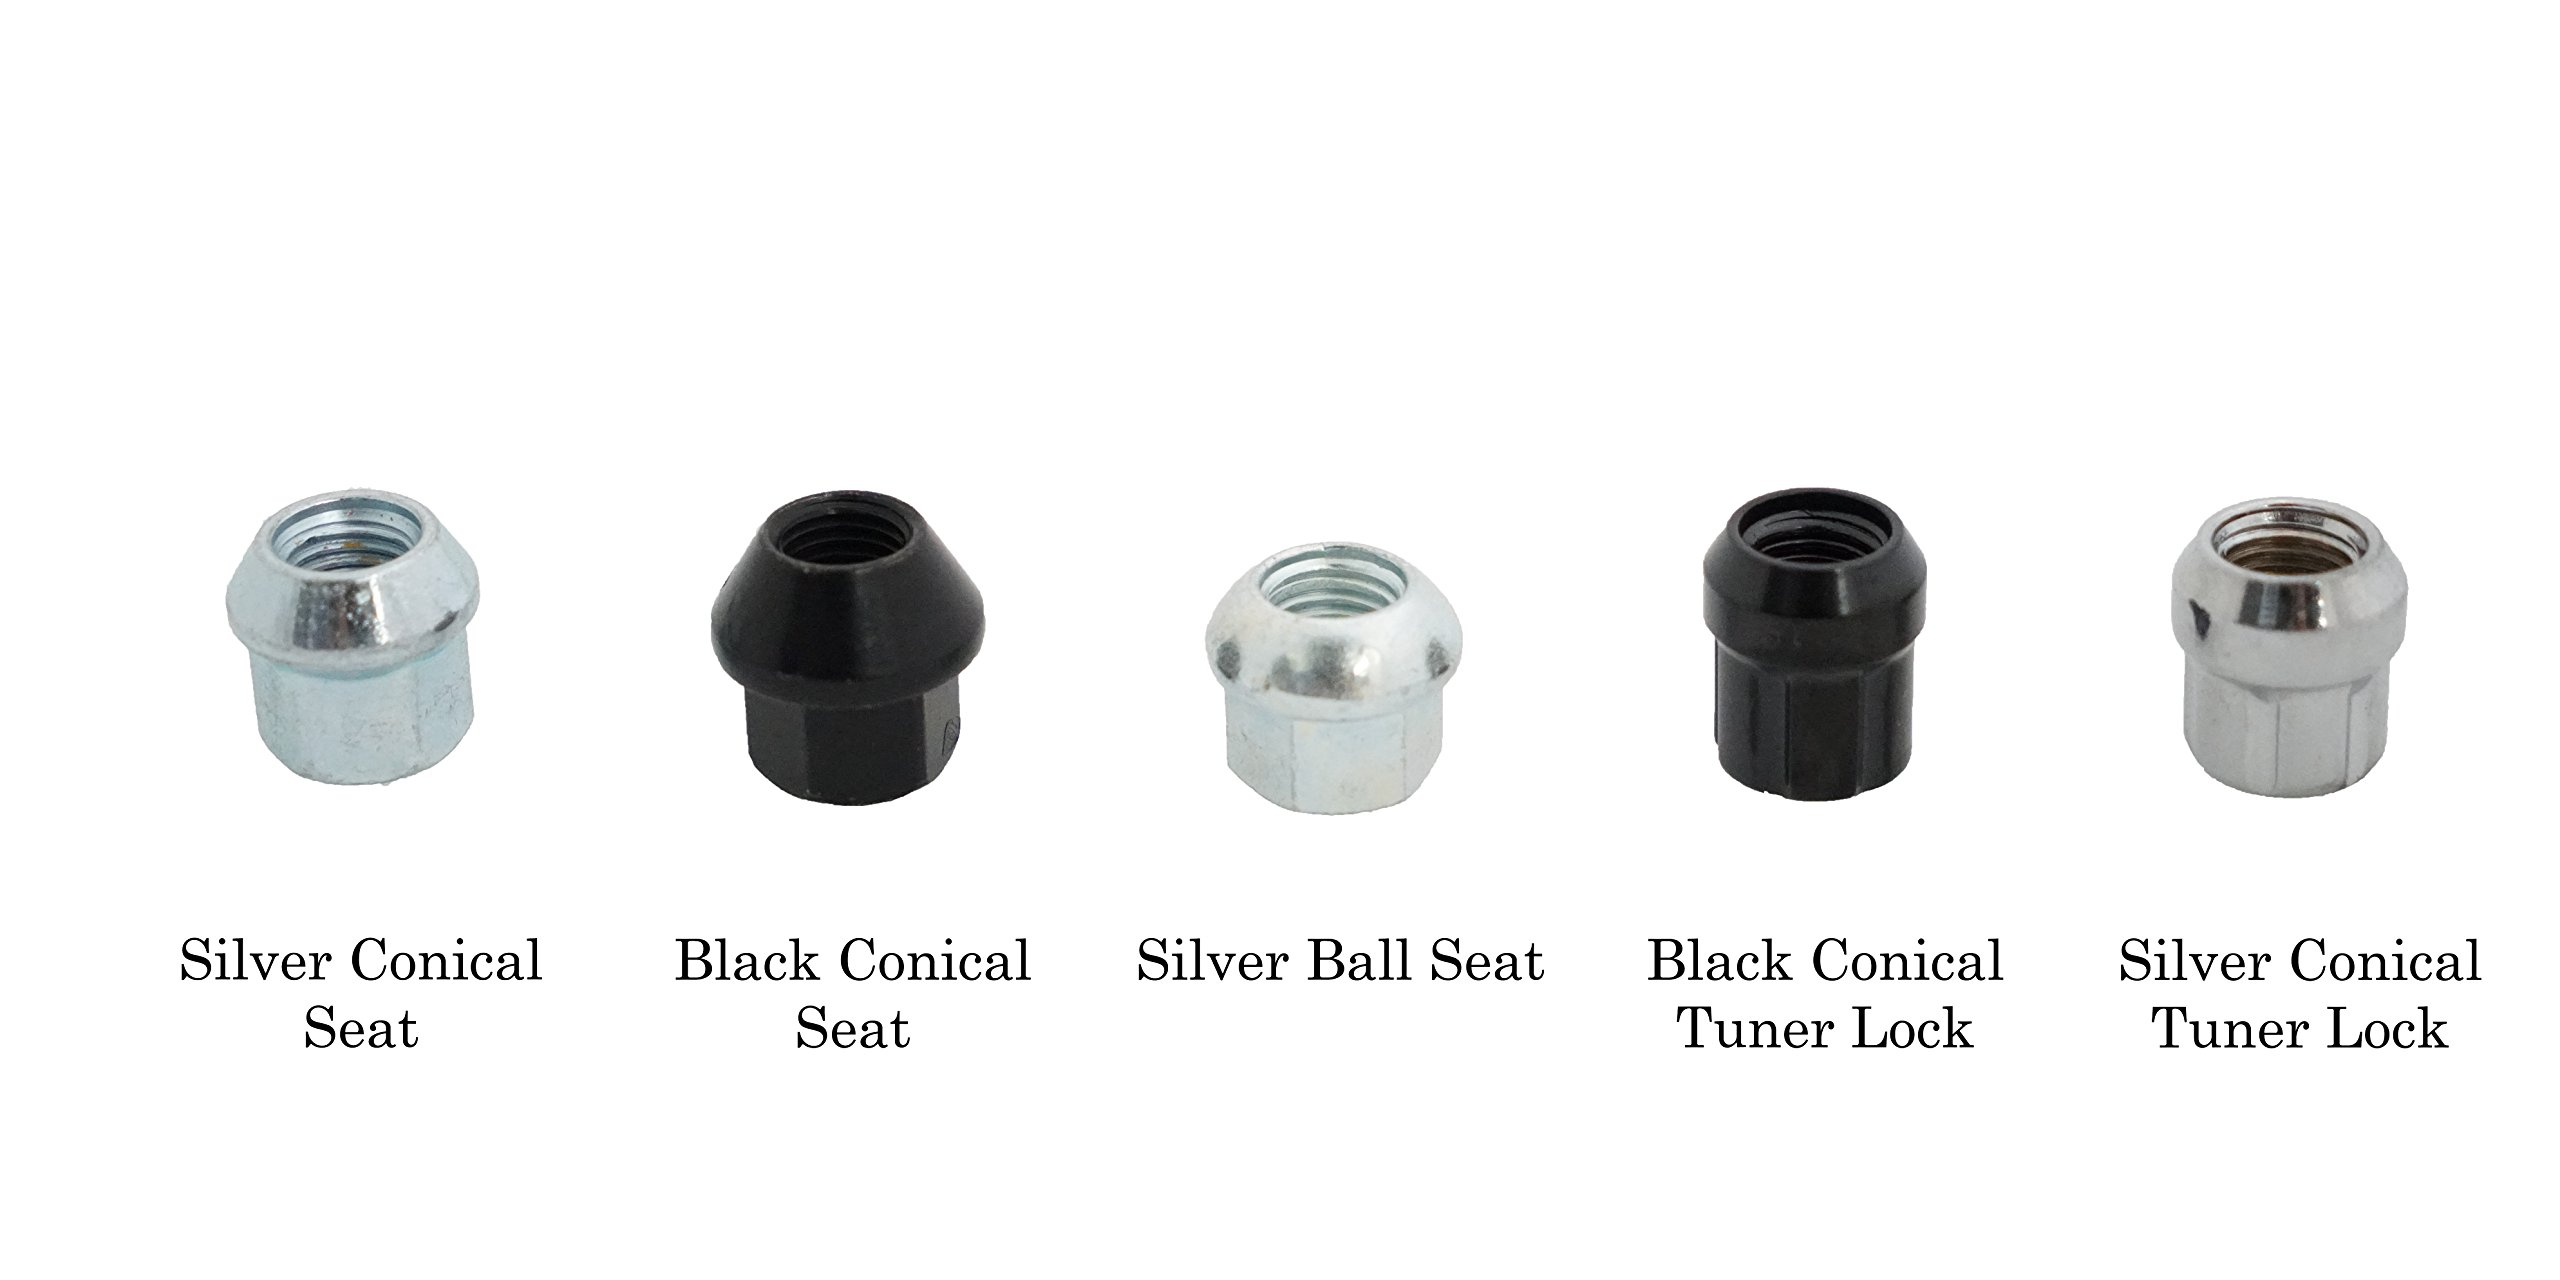 Motorsport Hardware Stud Conversion 4 LUG 78mm Length (14x1.25 to 14x1.5) with Silver Conical Seat Nuts by Motorsport Hardware (Image #2)